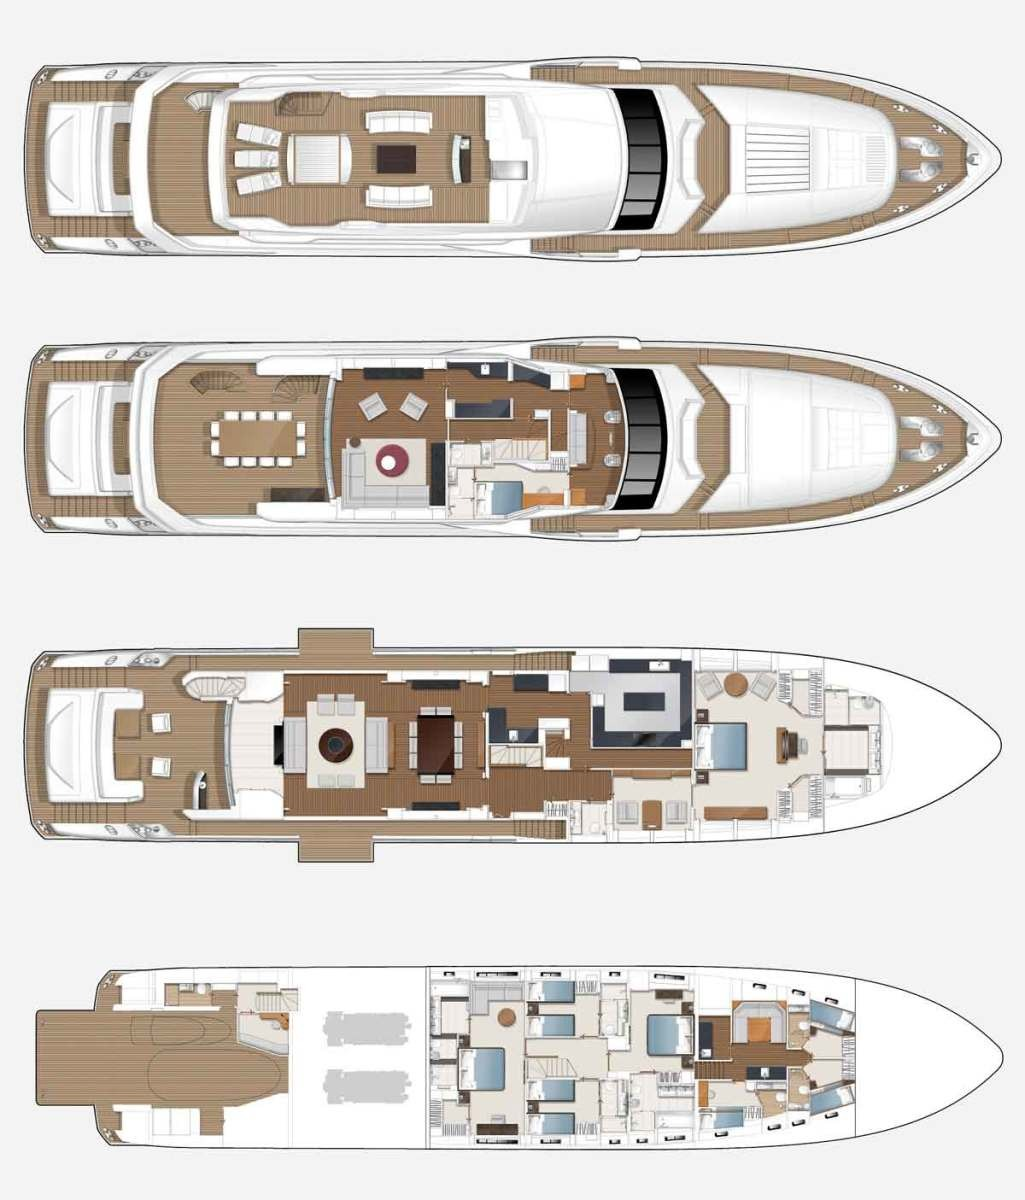 Motor Yacht IMPERIAL PRINCESS BEATRICE By Sunseeker - Layout General Arrangement